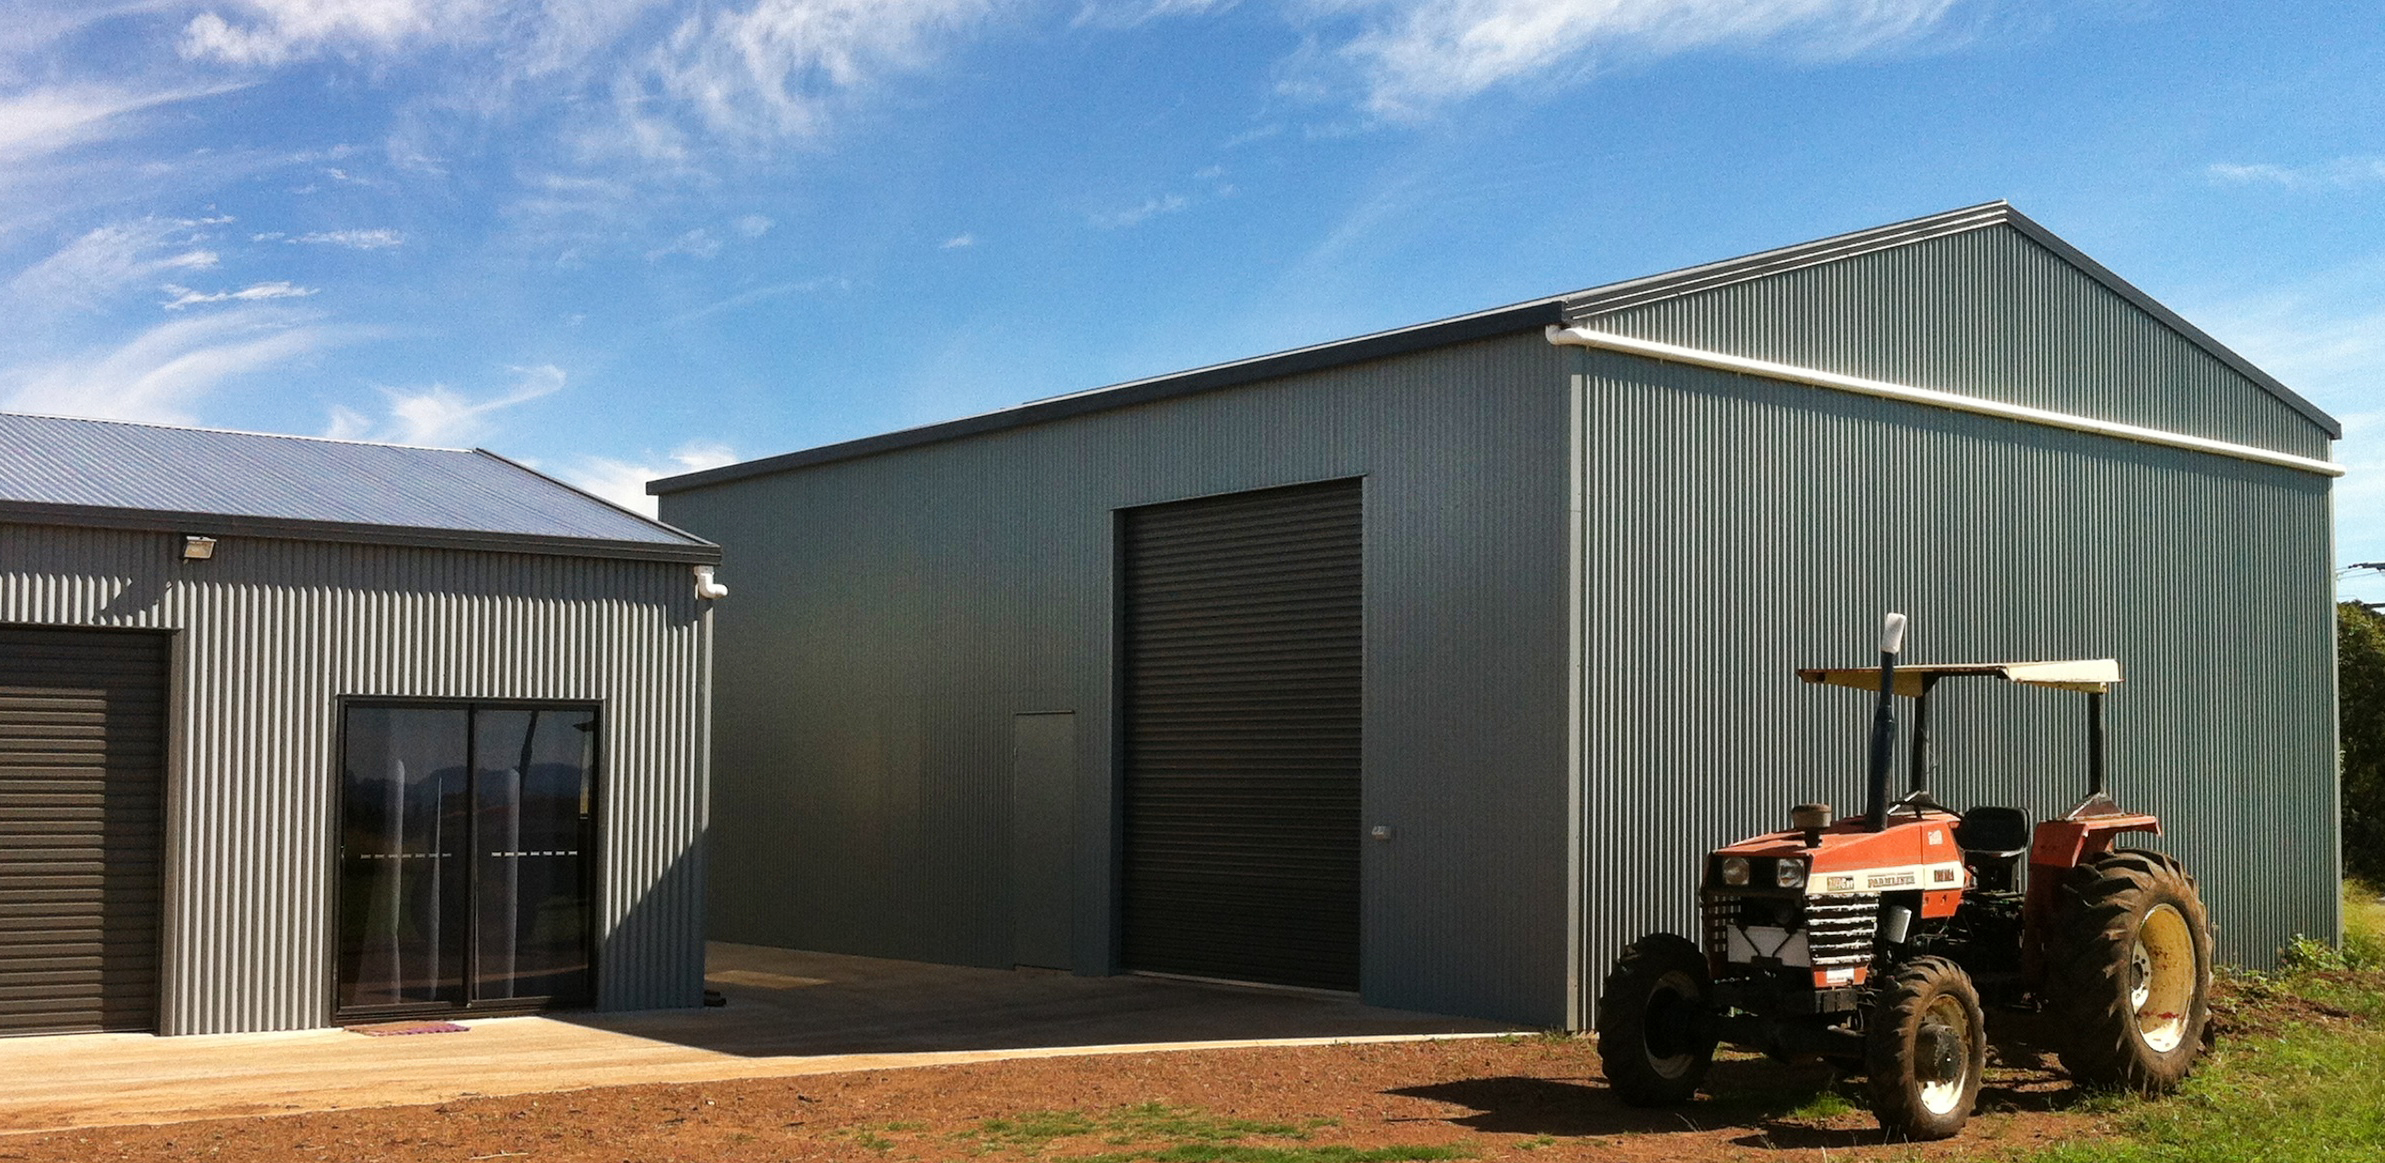 Shedzone storage sheds for brisbane agriculture and industry for Garden shed brisbane